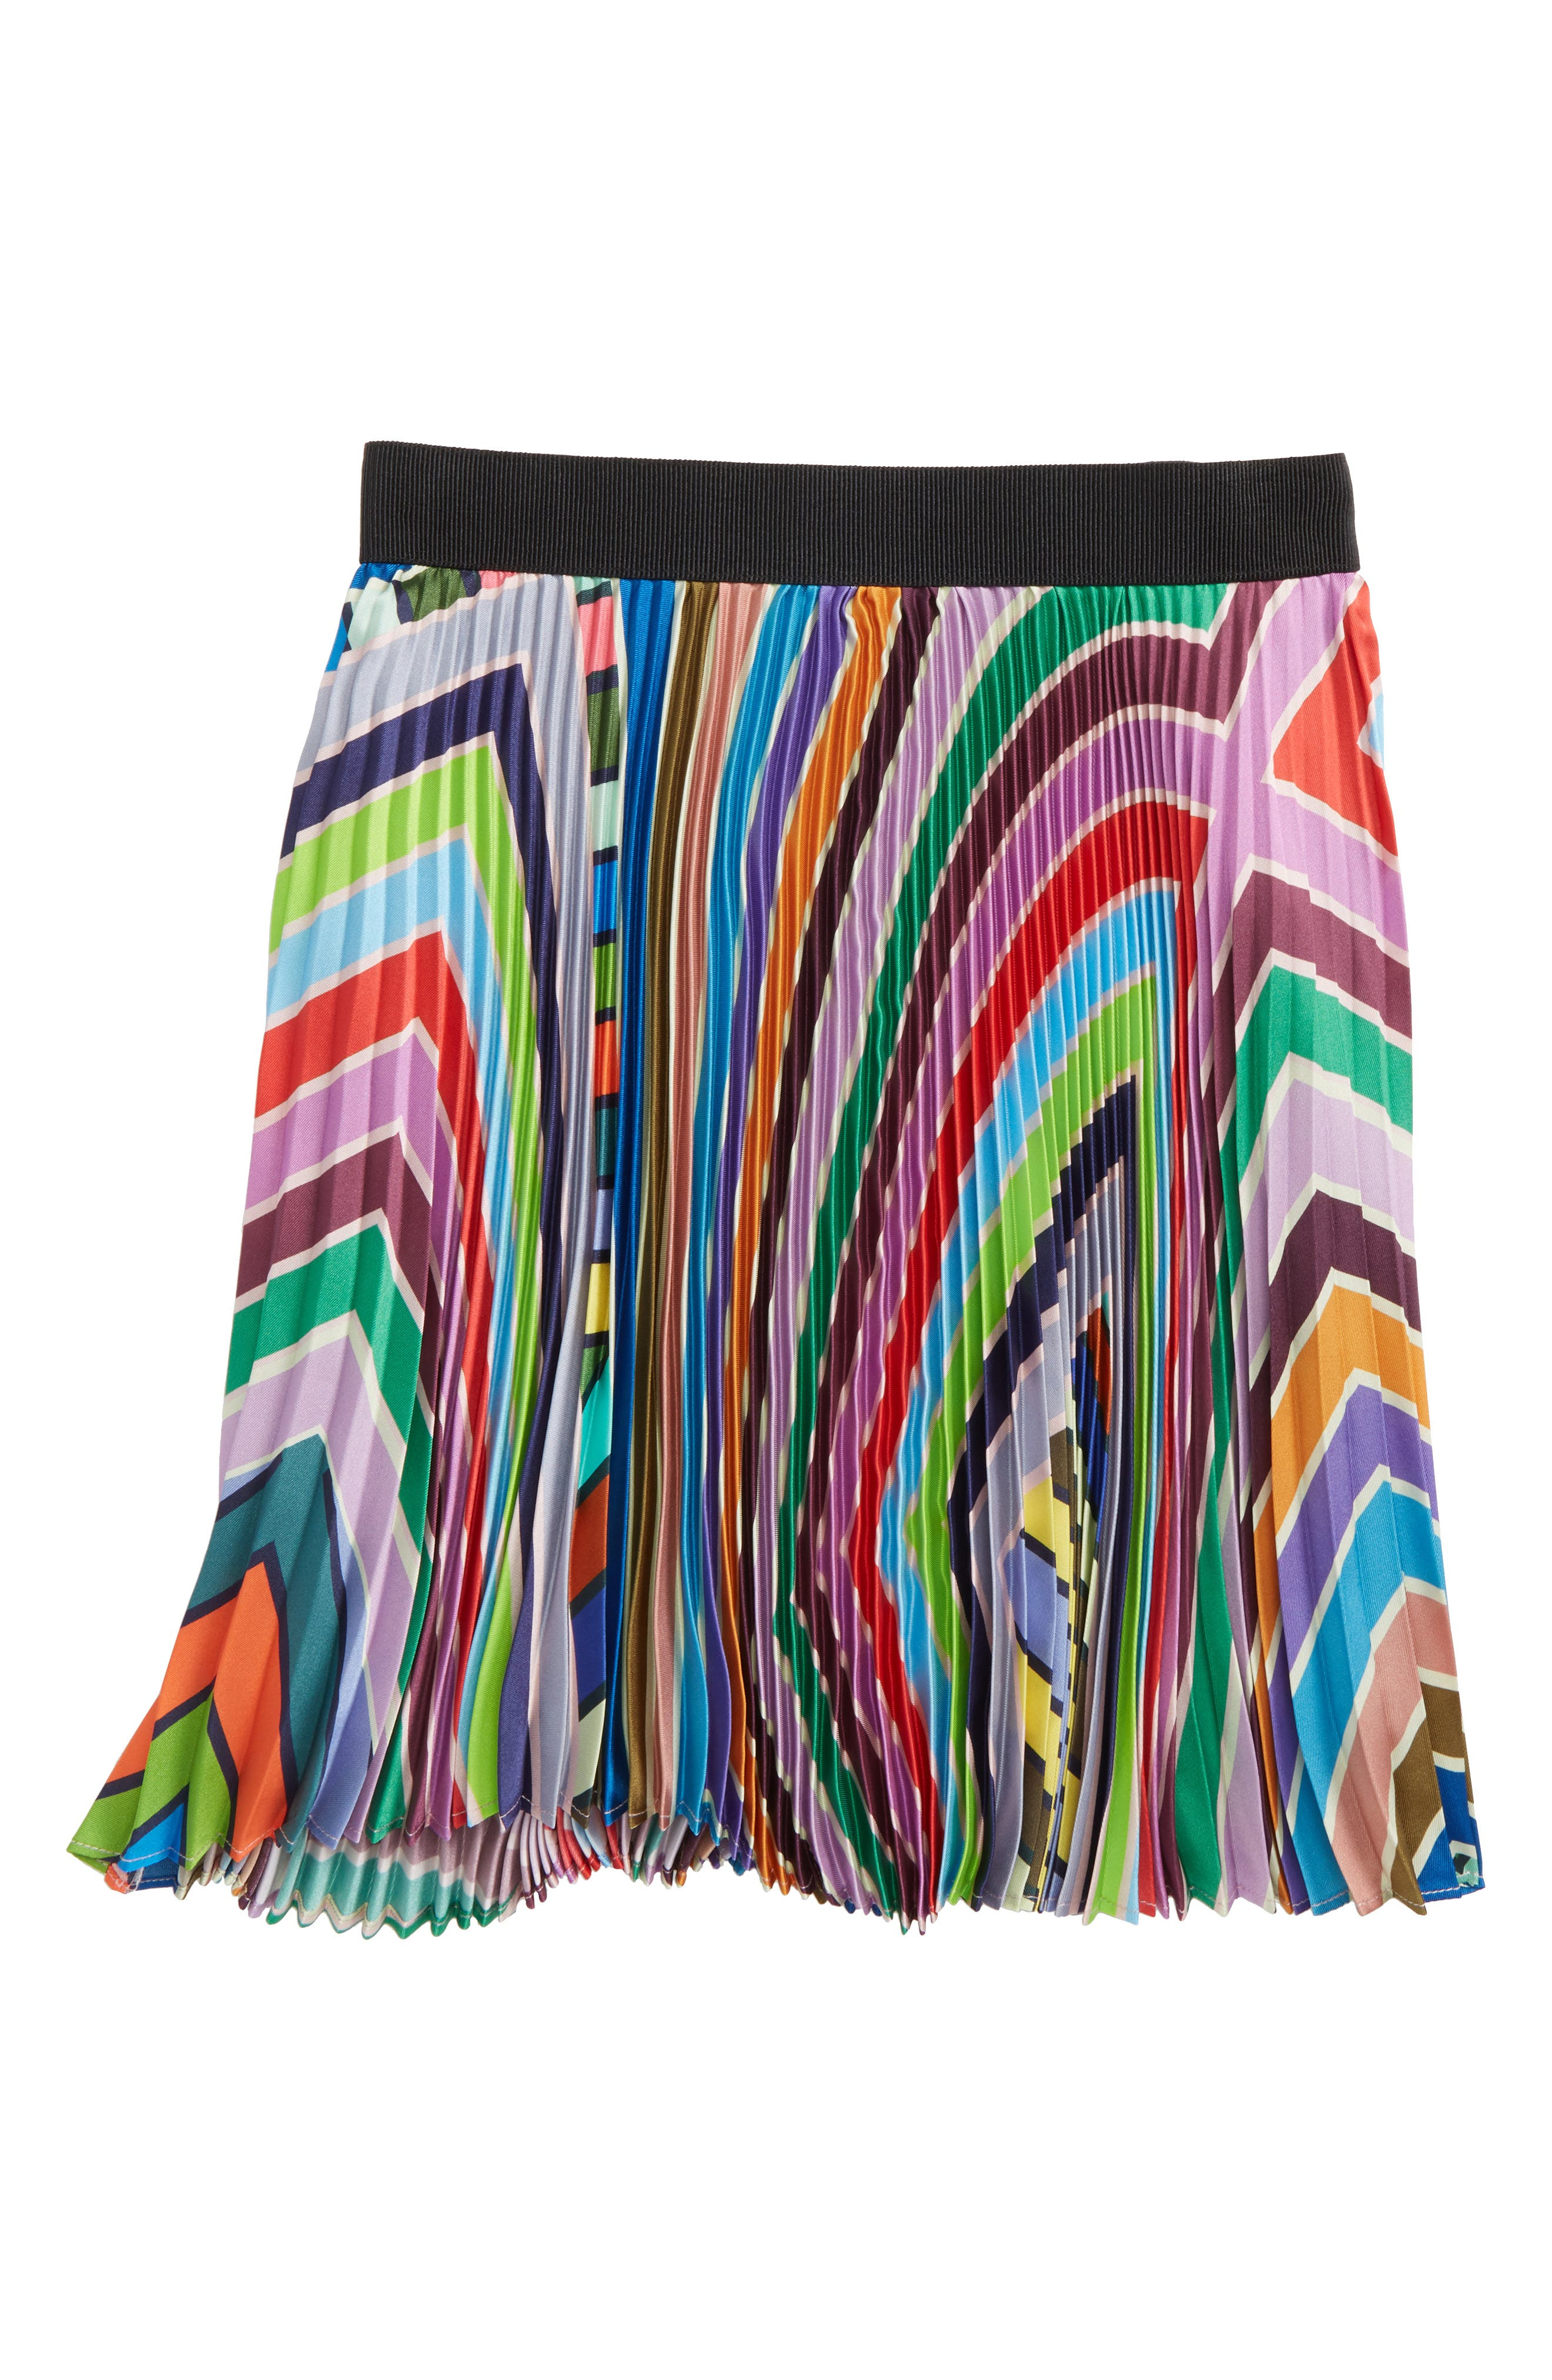 Alternate Image 1 Selected - Milly Minis Pleated Skirt (Big Girls)